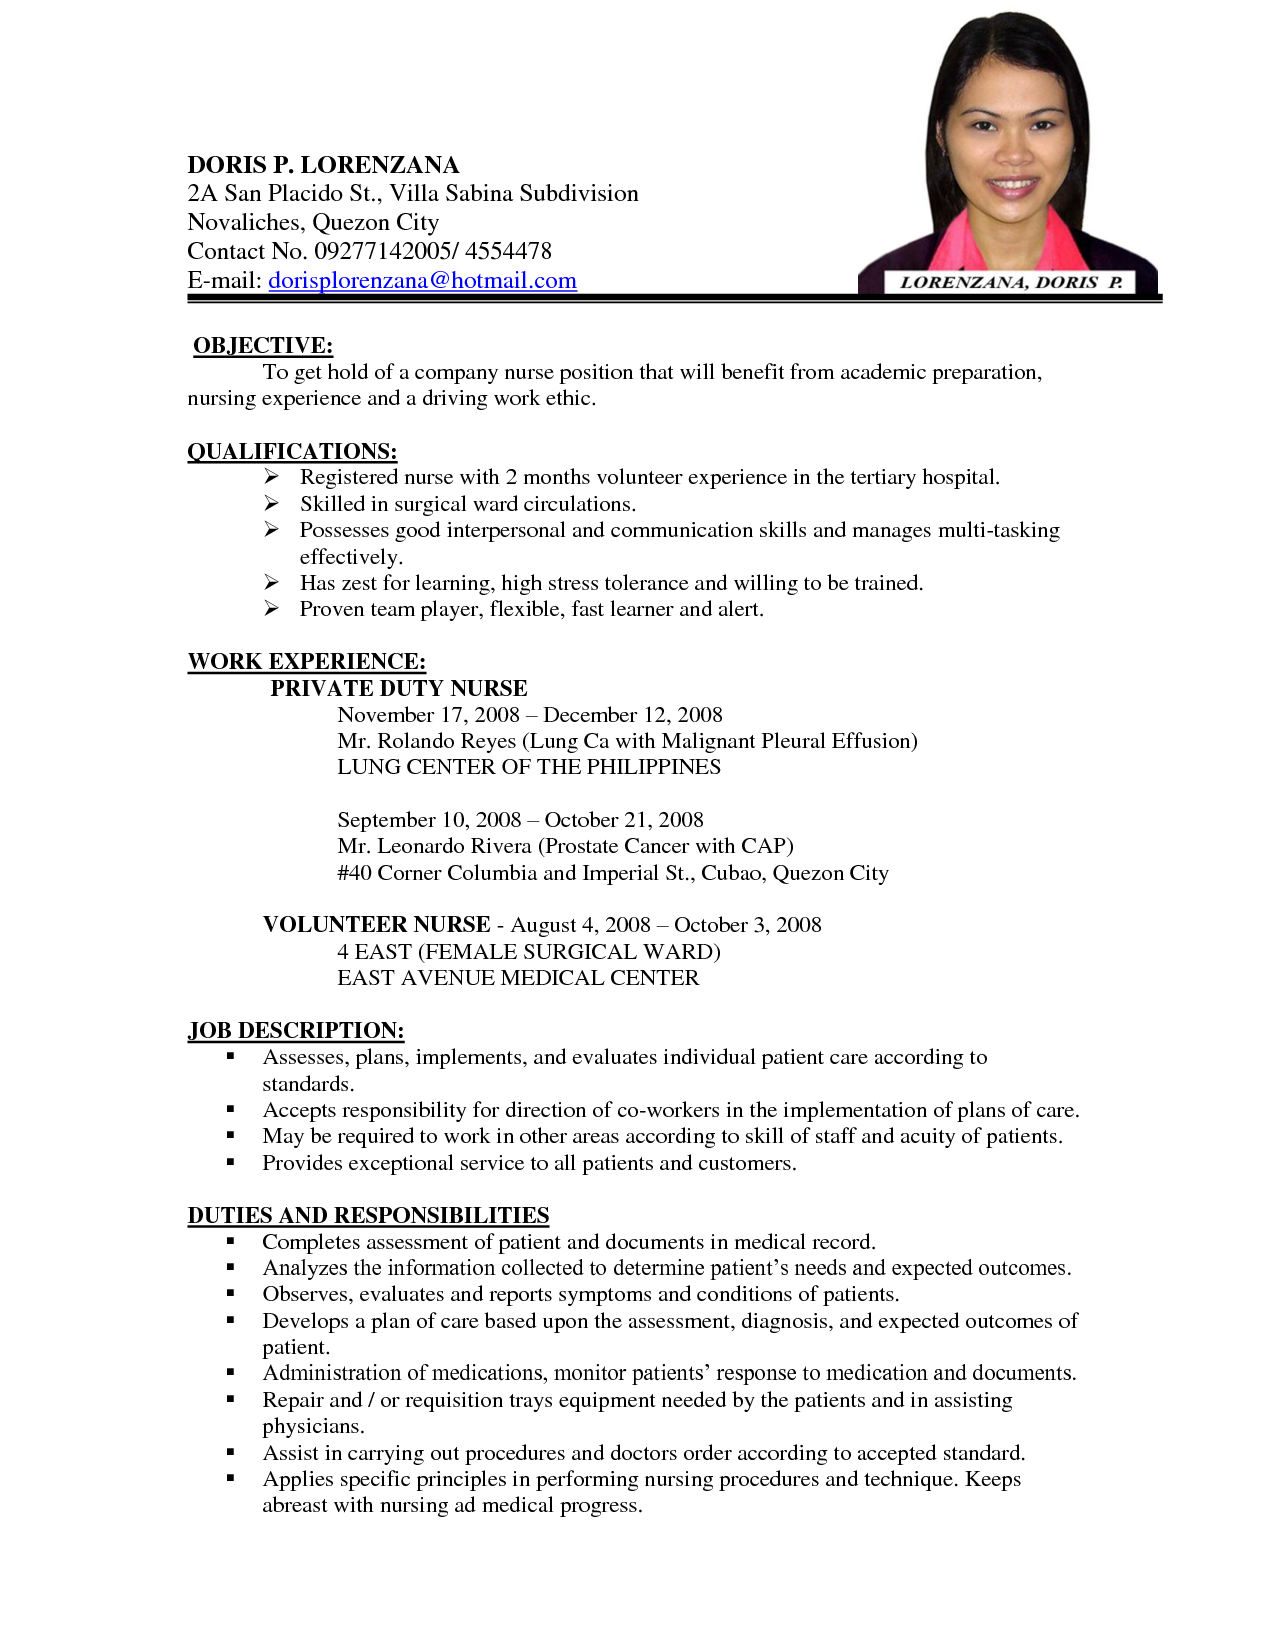 Resume Format Nursing Pic Nurse Template 5 Job resume